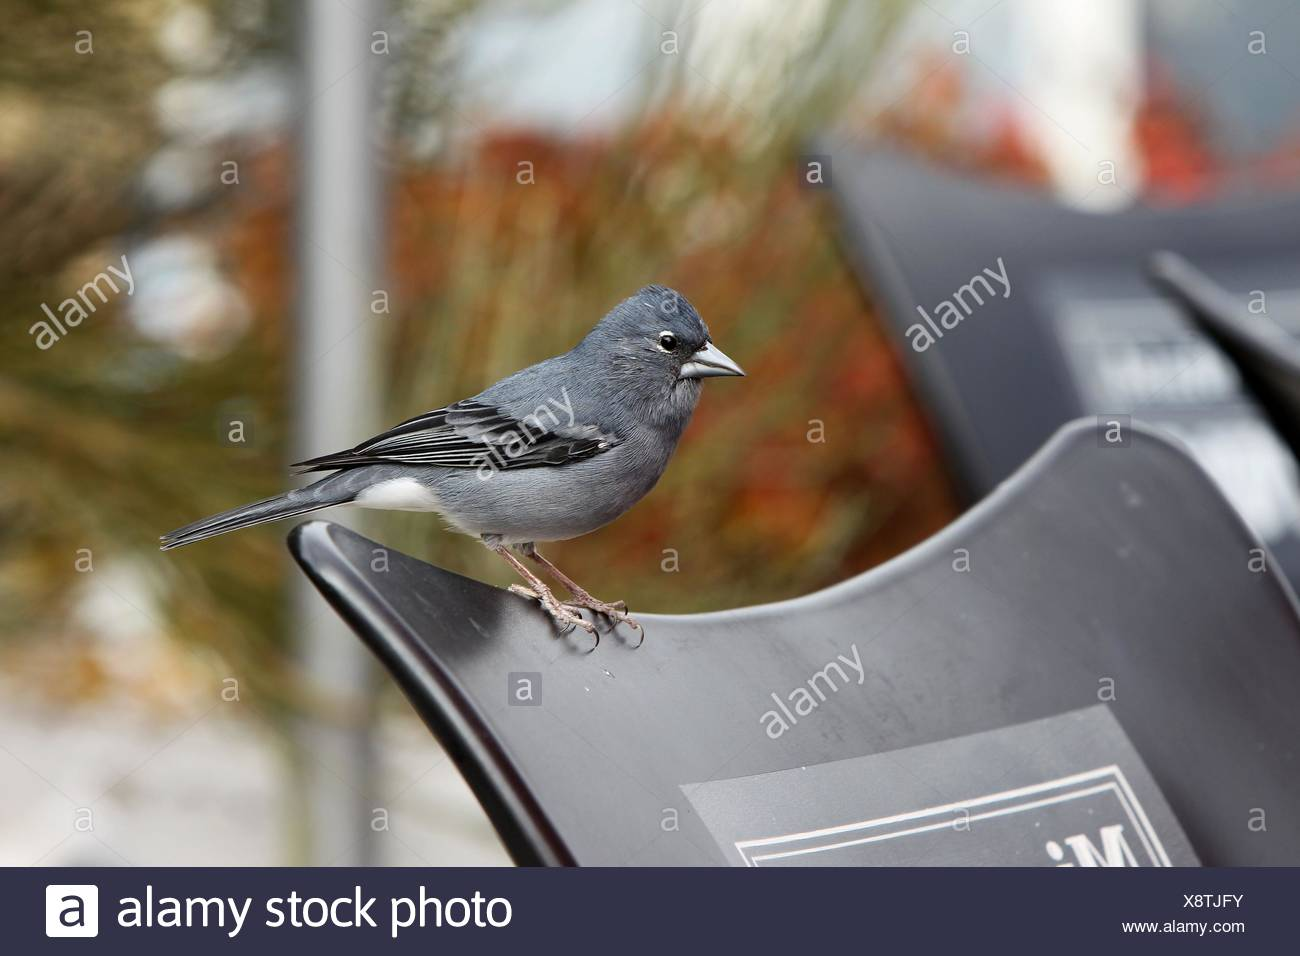 blue chaffinch - Stock Image